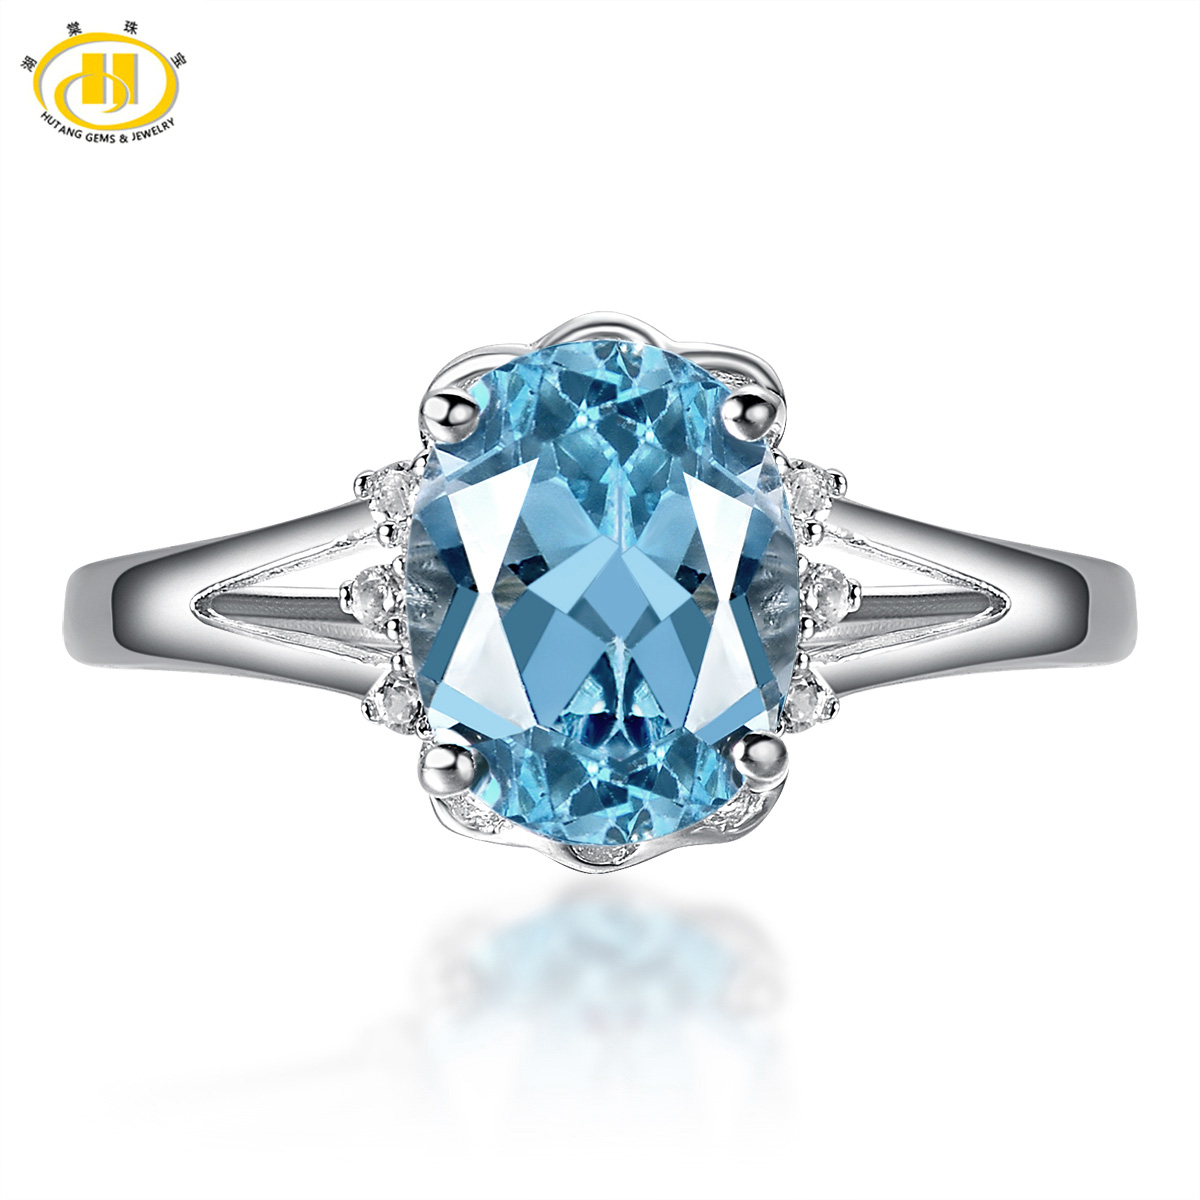 HUTANG NEW Fashion 2.29ct Natural Blue Topaz Solid 925 Sterling Silver Ring Classic Gemstone Fine Jewelry Women's Rings Gift